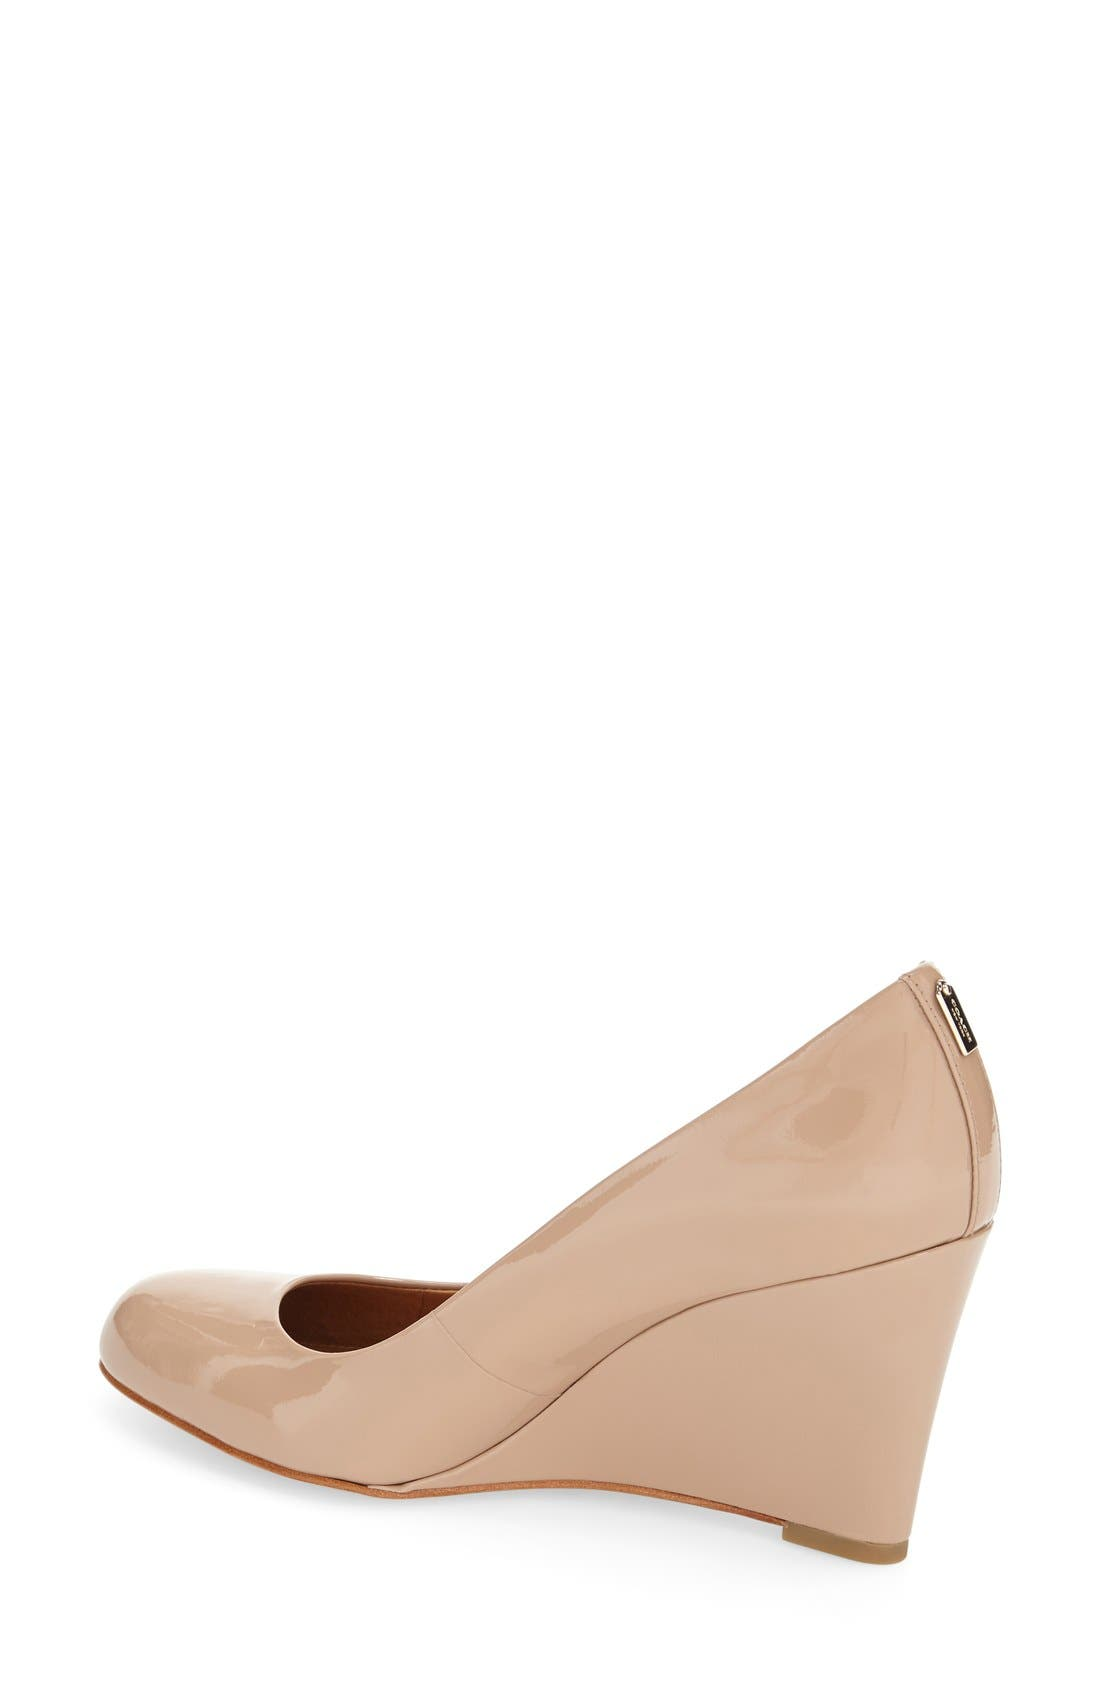 Alternate Image 2  - COACH 'Rileigh' Wedge Pump (Women)